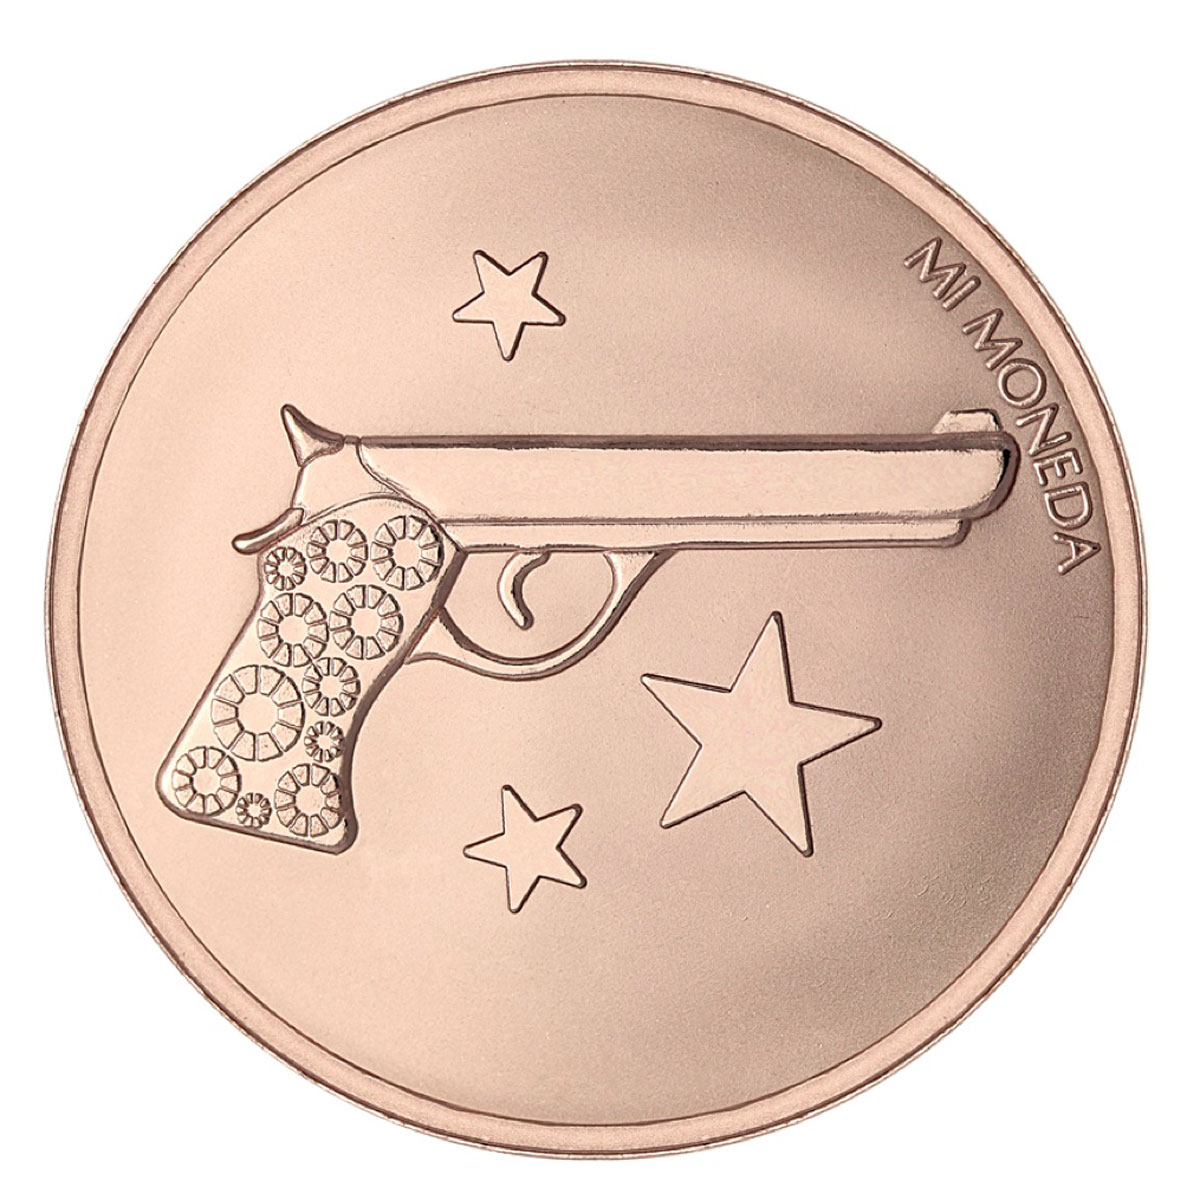 Mi Moneda Aim High & Pistol Rose Gold-Plated Disc - ONLY 3 LEFT